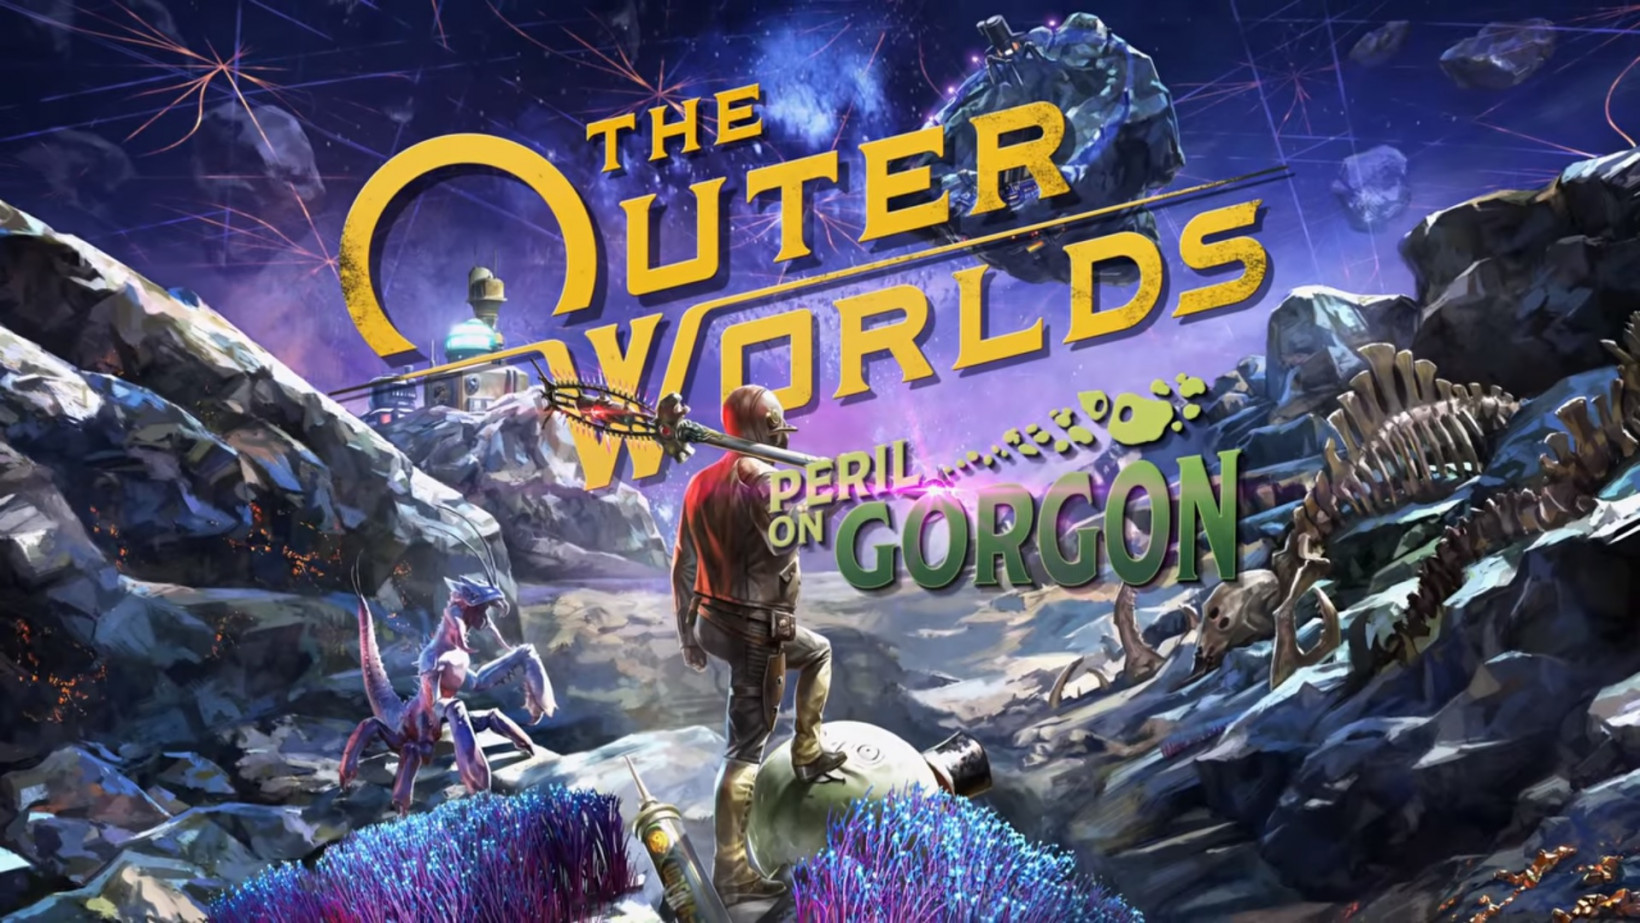 'The Outer Worlds: Peril on Gorgon' review